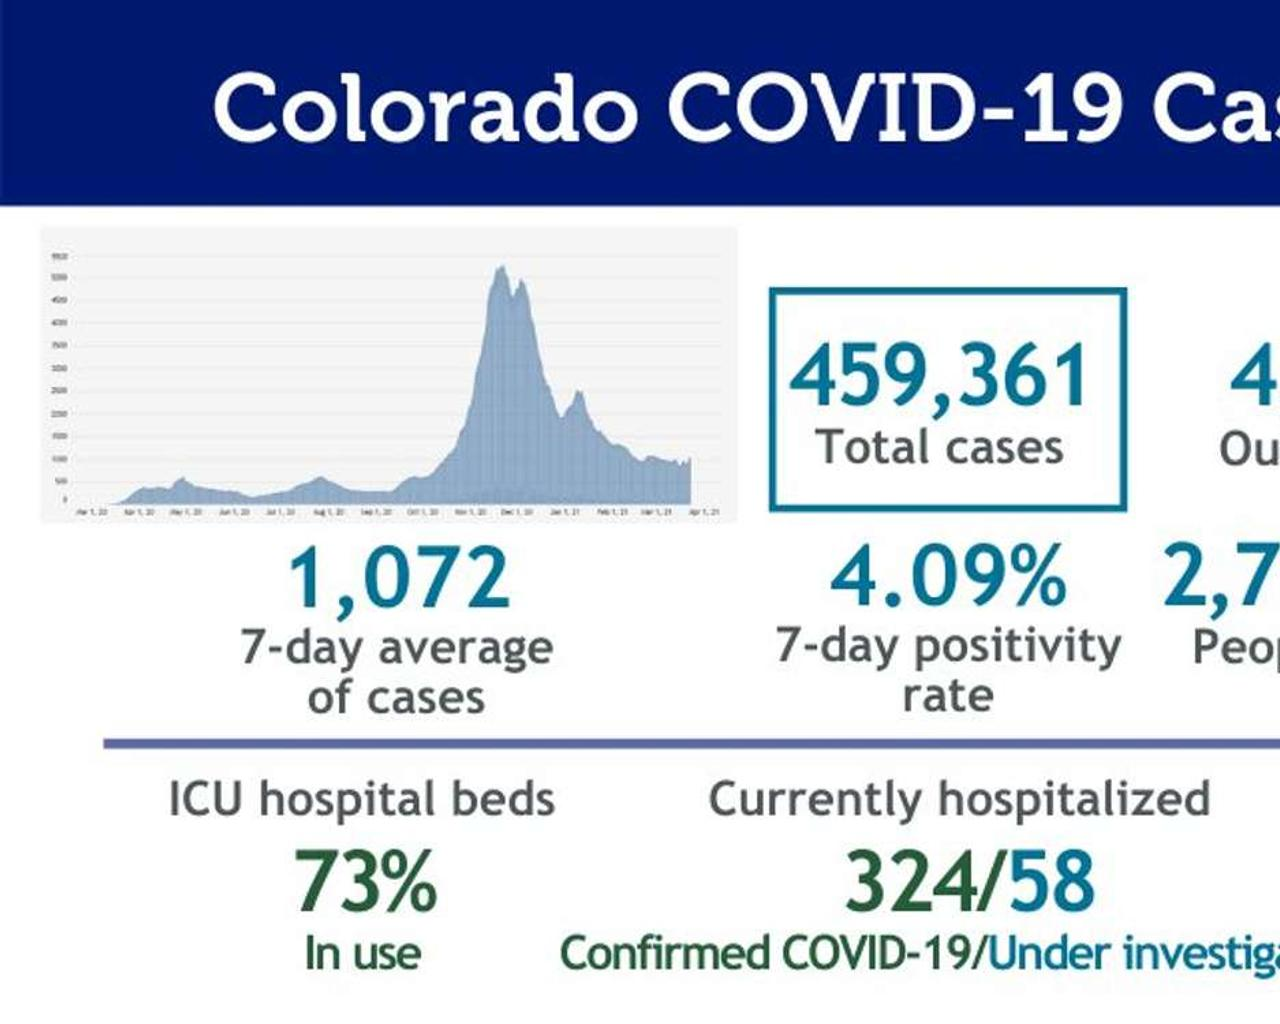 COVID In Colorado: You May Have To Wait Almost Two Months After You Become Registered For Vaccine At Week's End